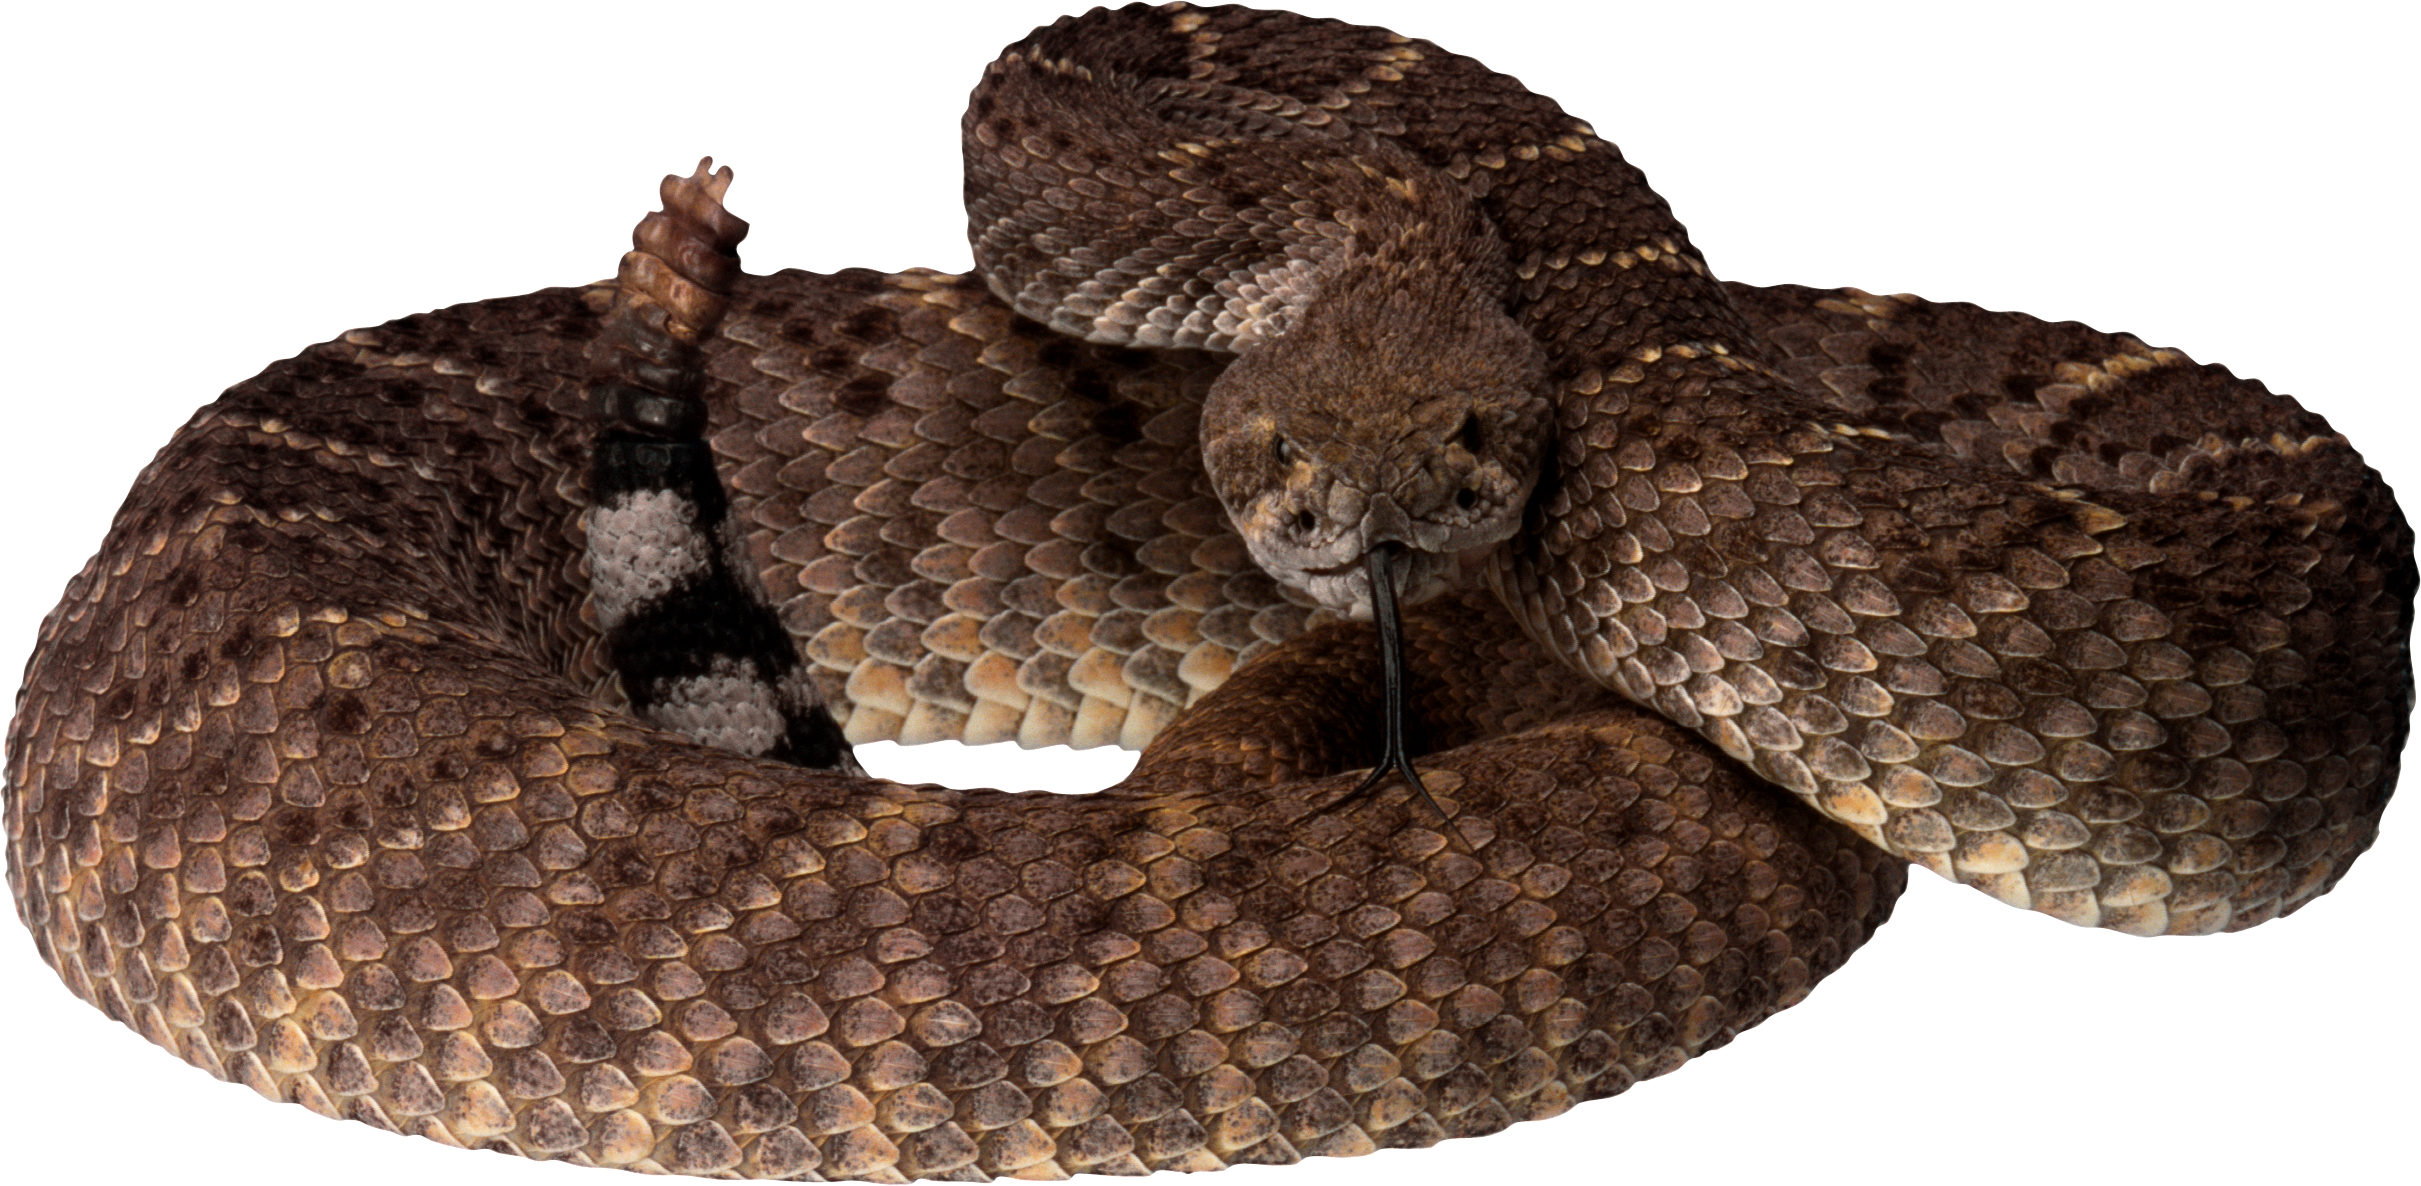 Brown tree snake clipart banner royalty free library Snake PNG | Animal PNG | Pinterest | Snake and Animal banner royalty free library